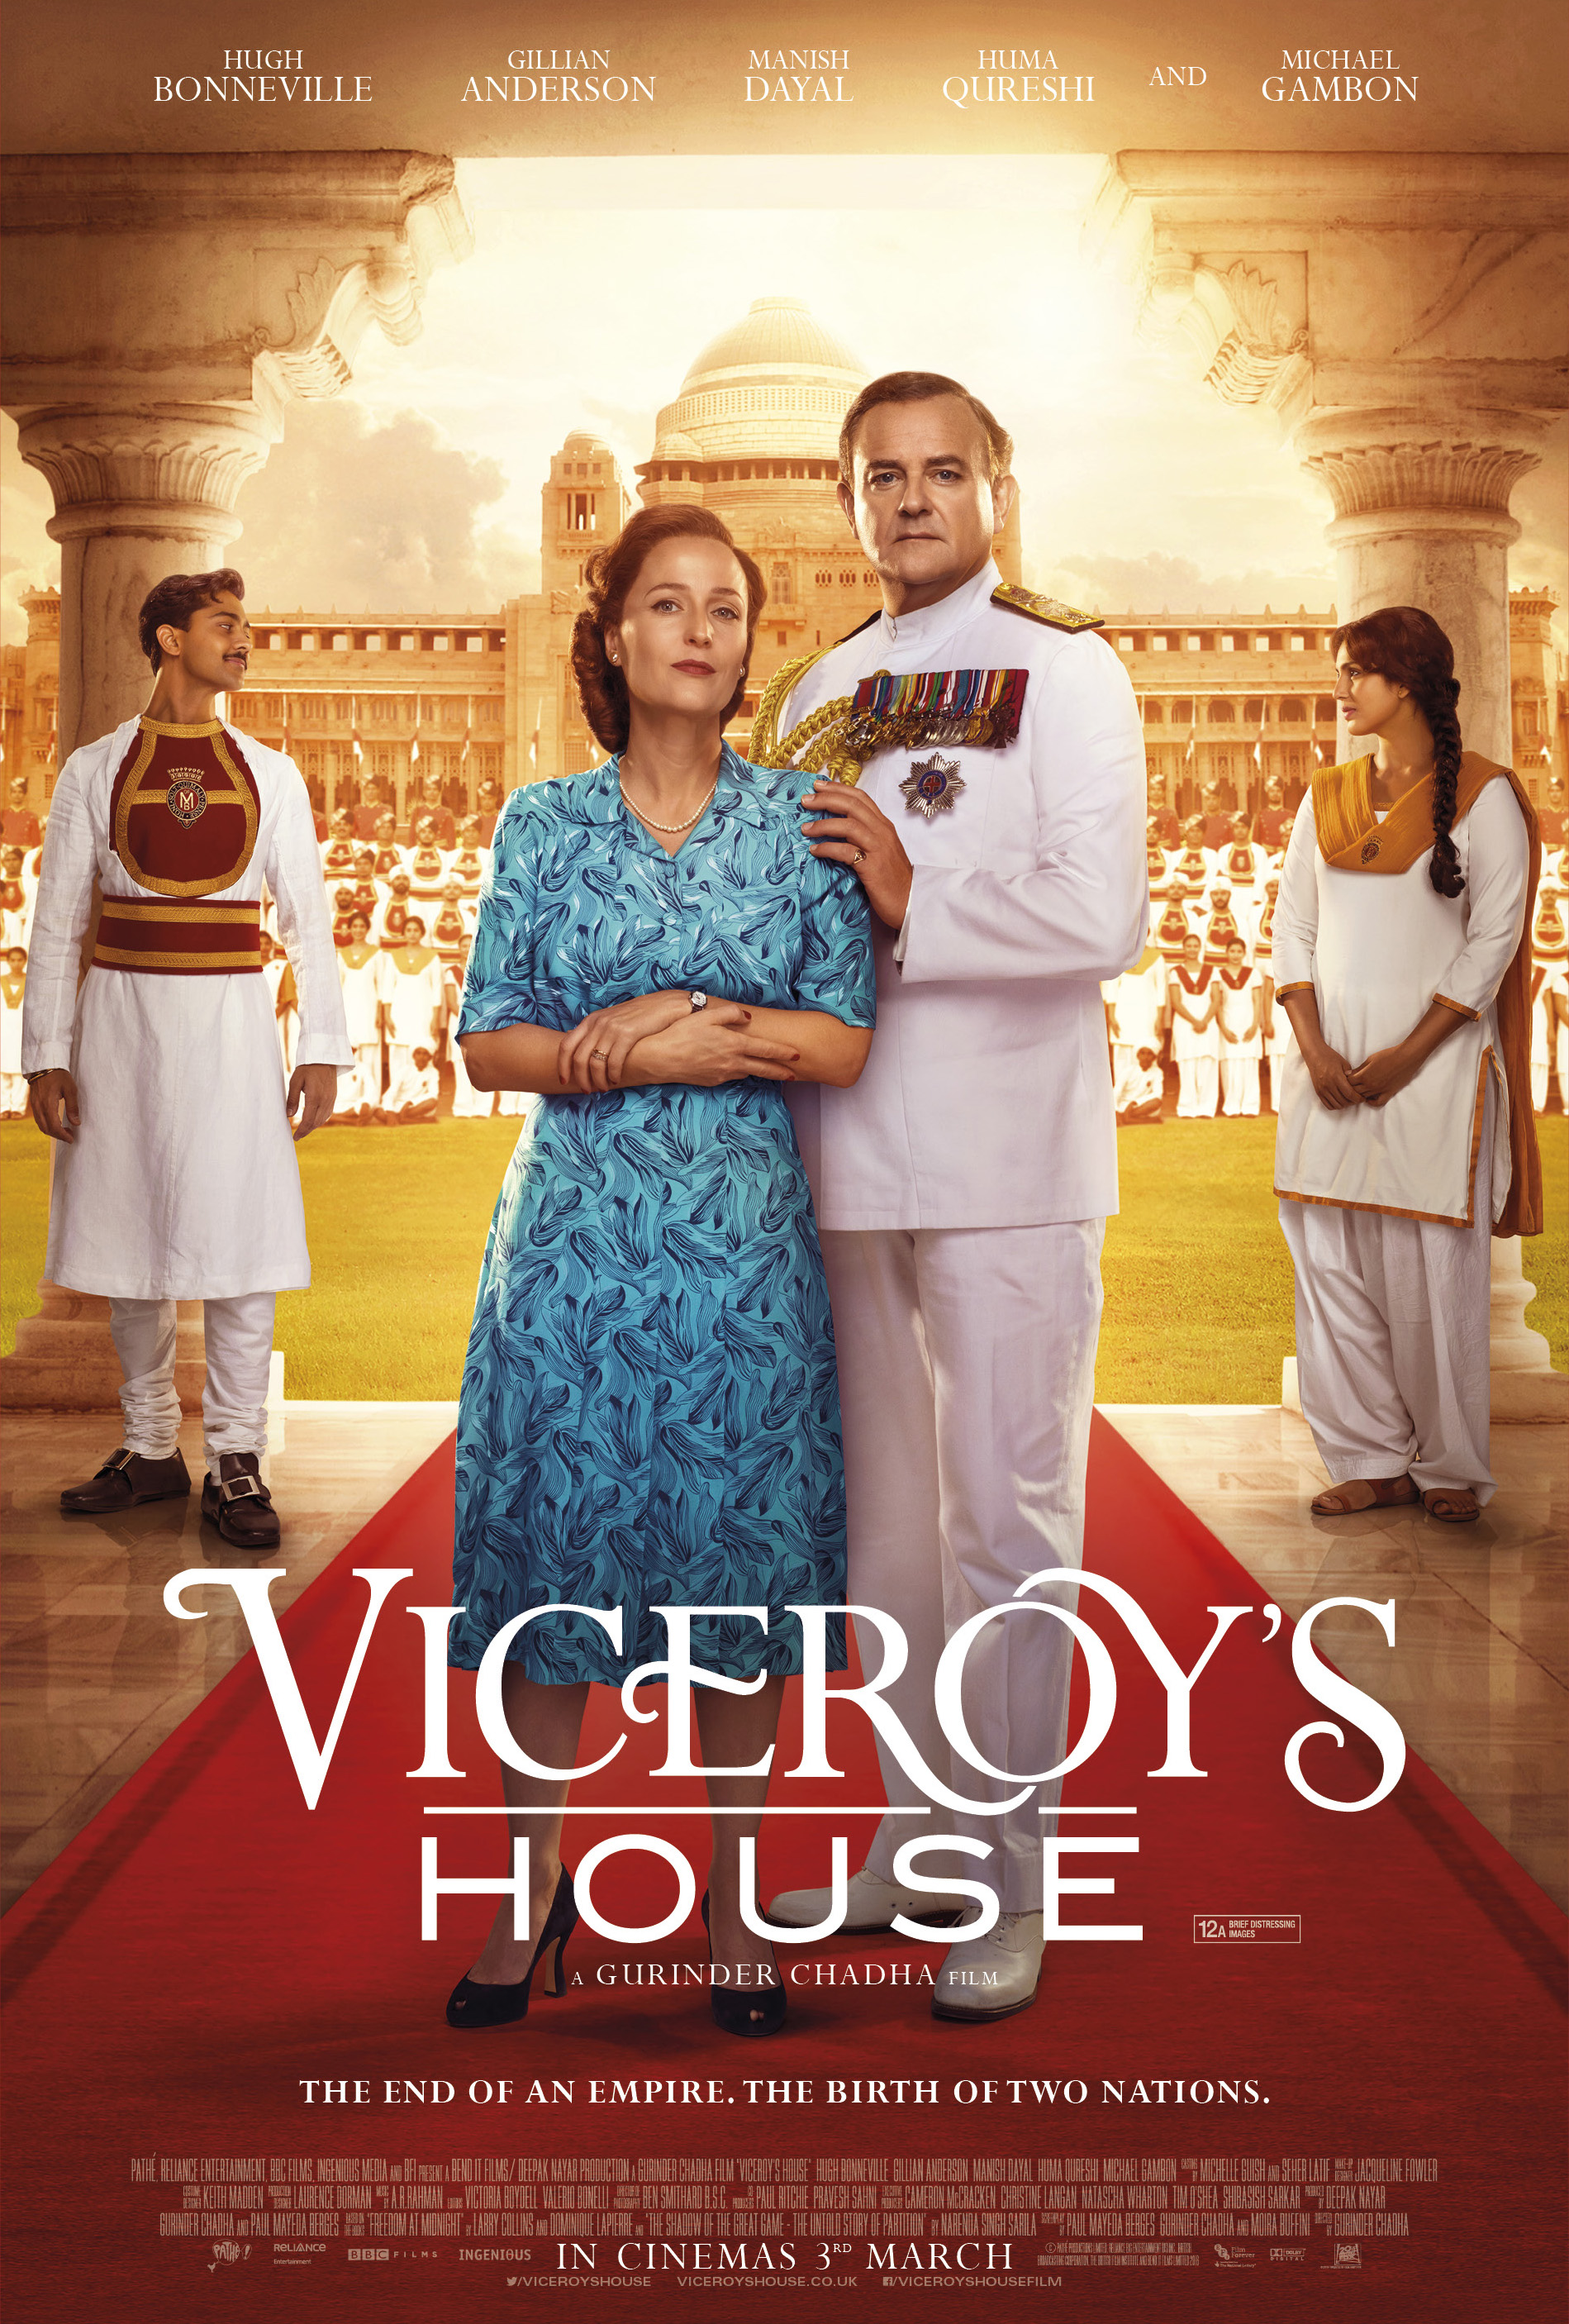 Viceroy's House to premiere at Berlin Film Festival